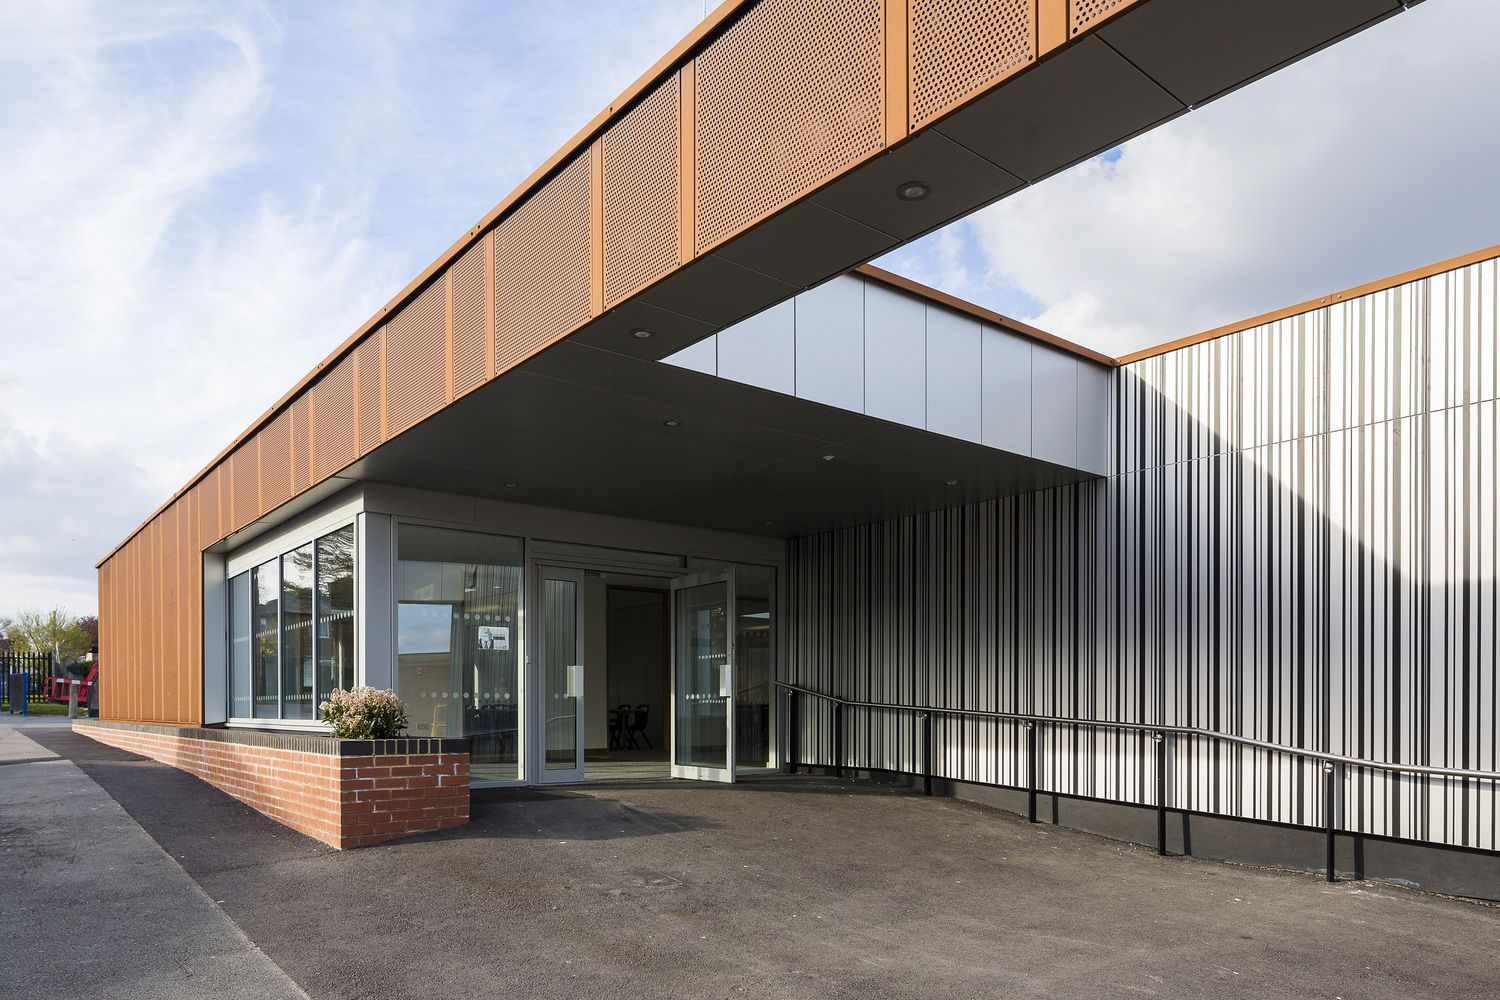 Gallery of Carshalton Boys Sports College / Fraser Brown